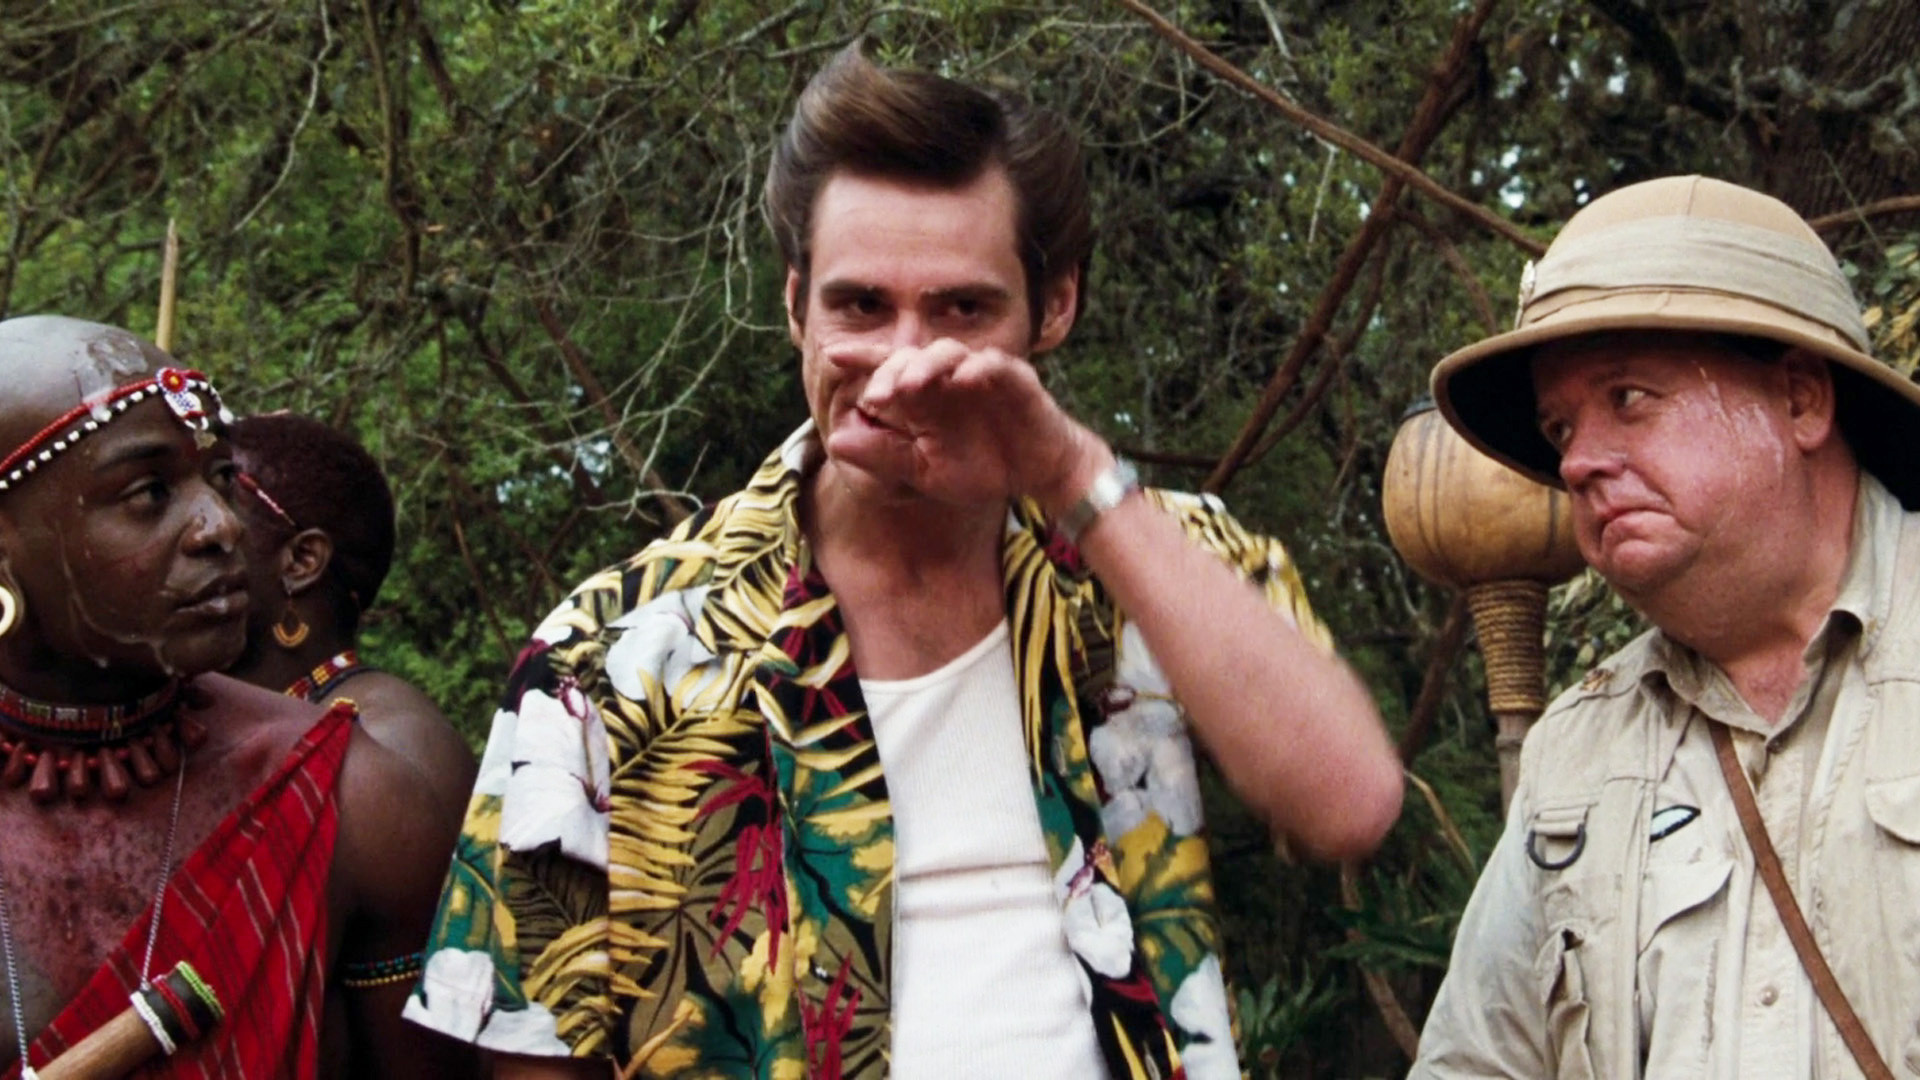 Pictures & Photos from Ace Ventura: When Nature Calls